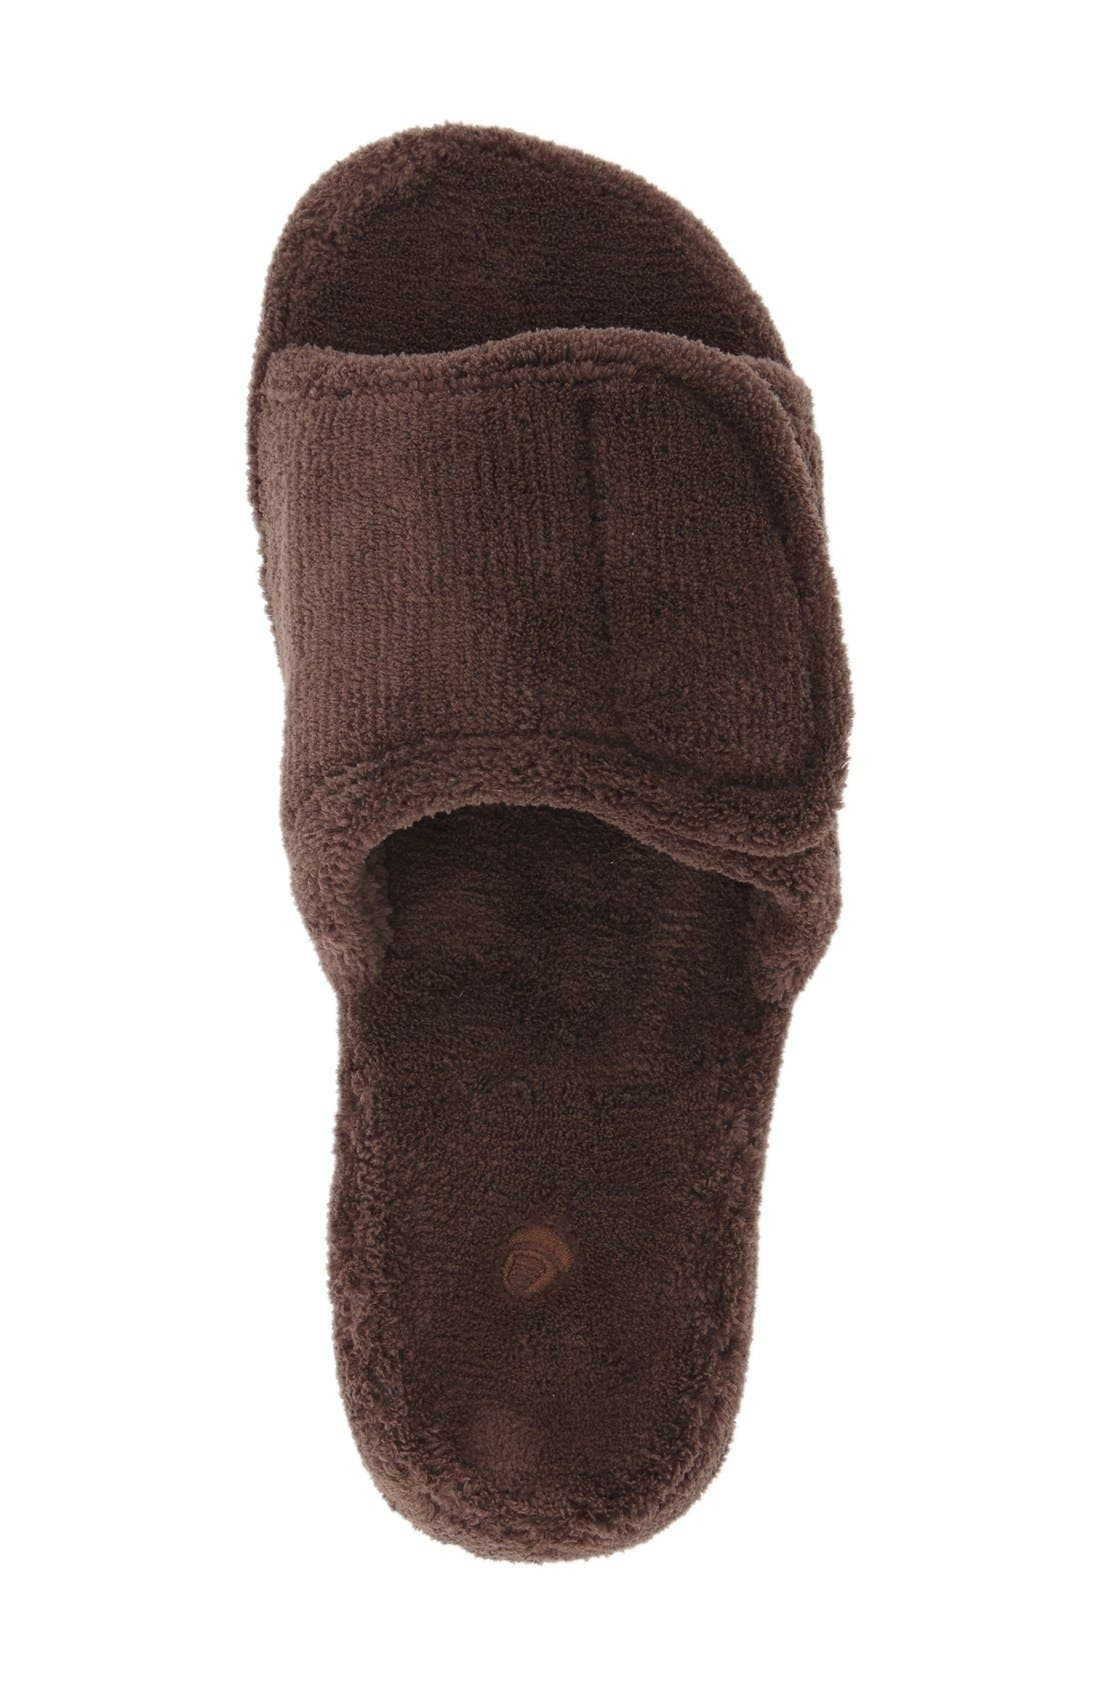 'Spa' Slipper,                             Alternate thumbnail 3, color,                             Chocolate